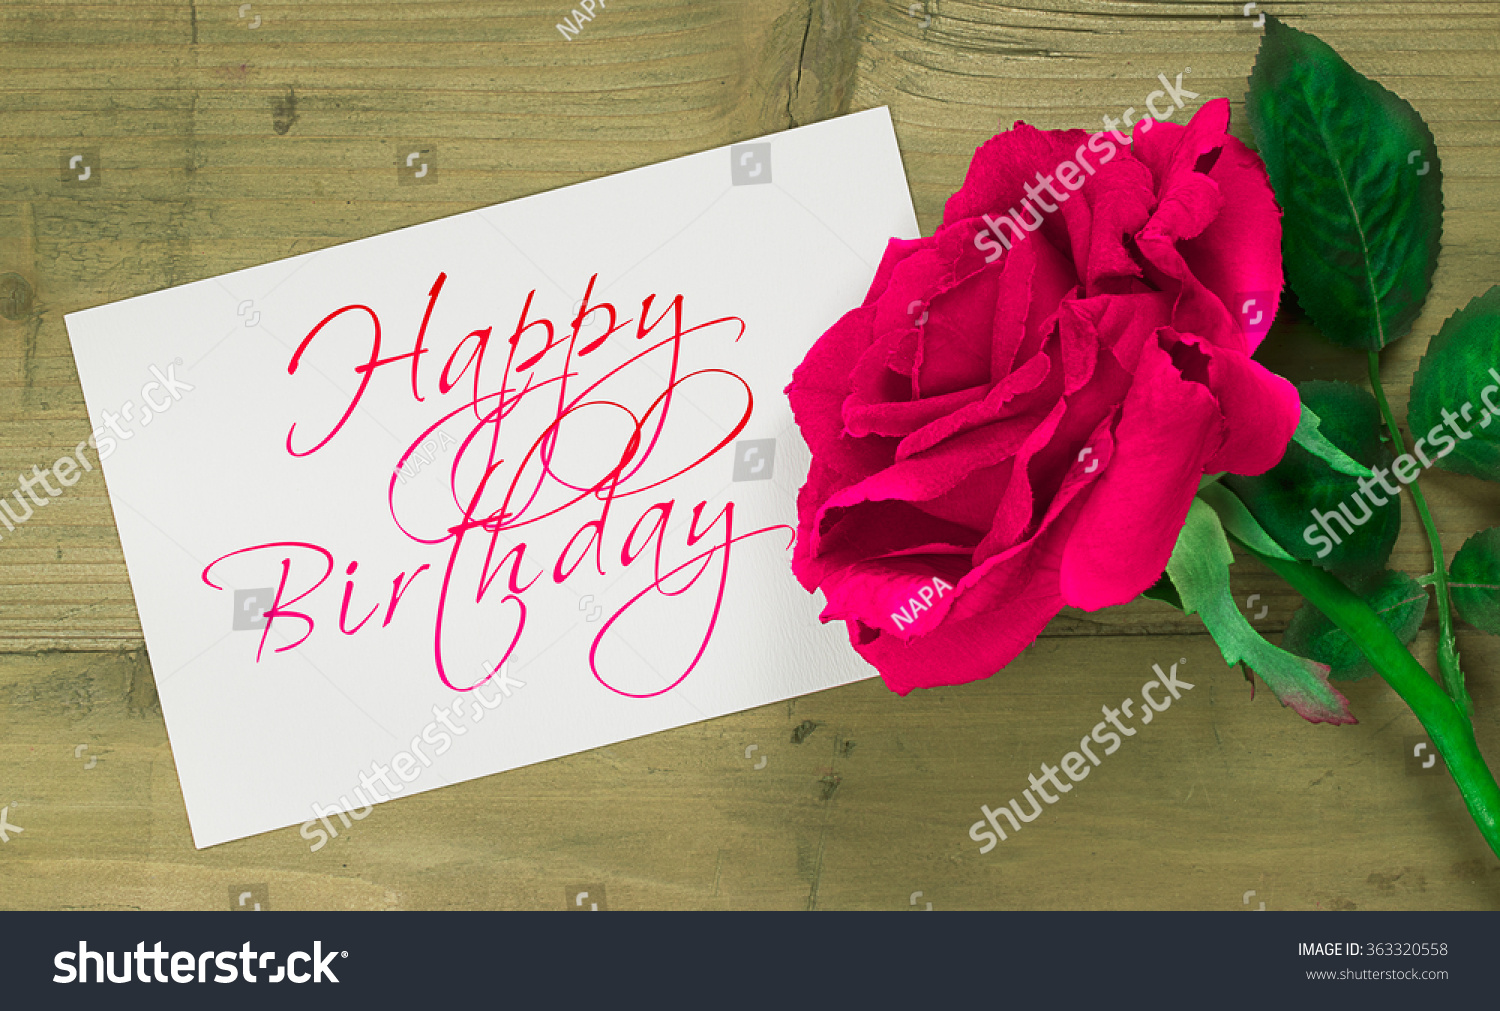 Pink rose flower happy birthday text stock photo edit now pink rose flower with happy birthday text message wooden background izmirmasajfo